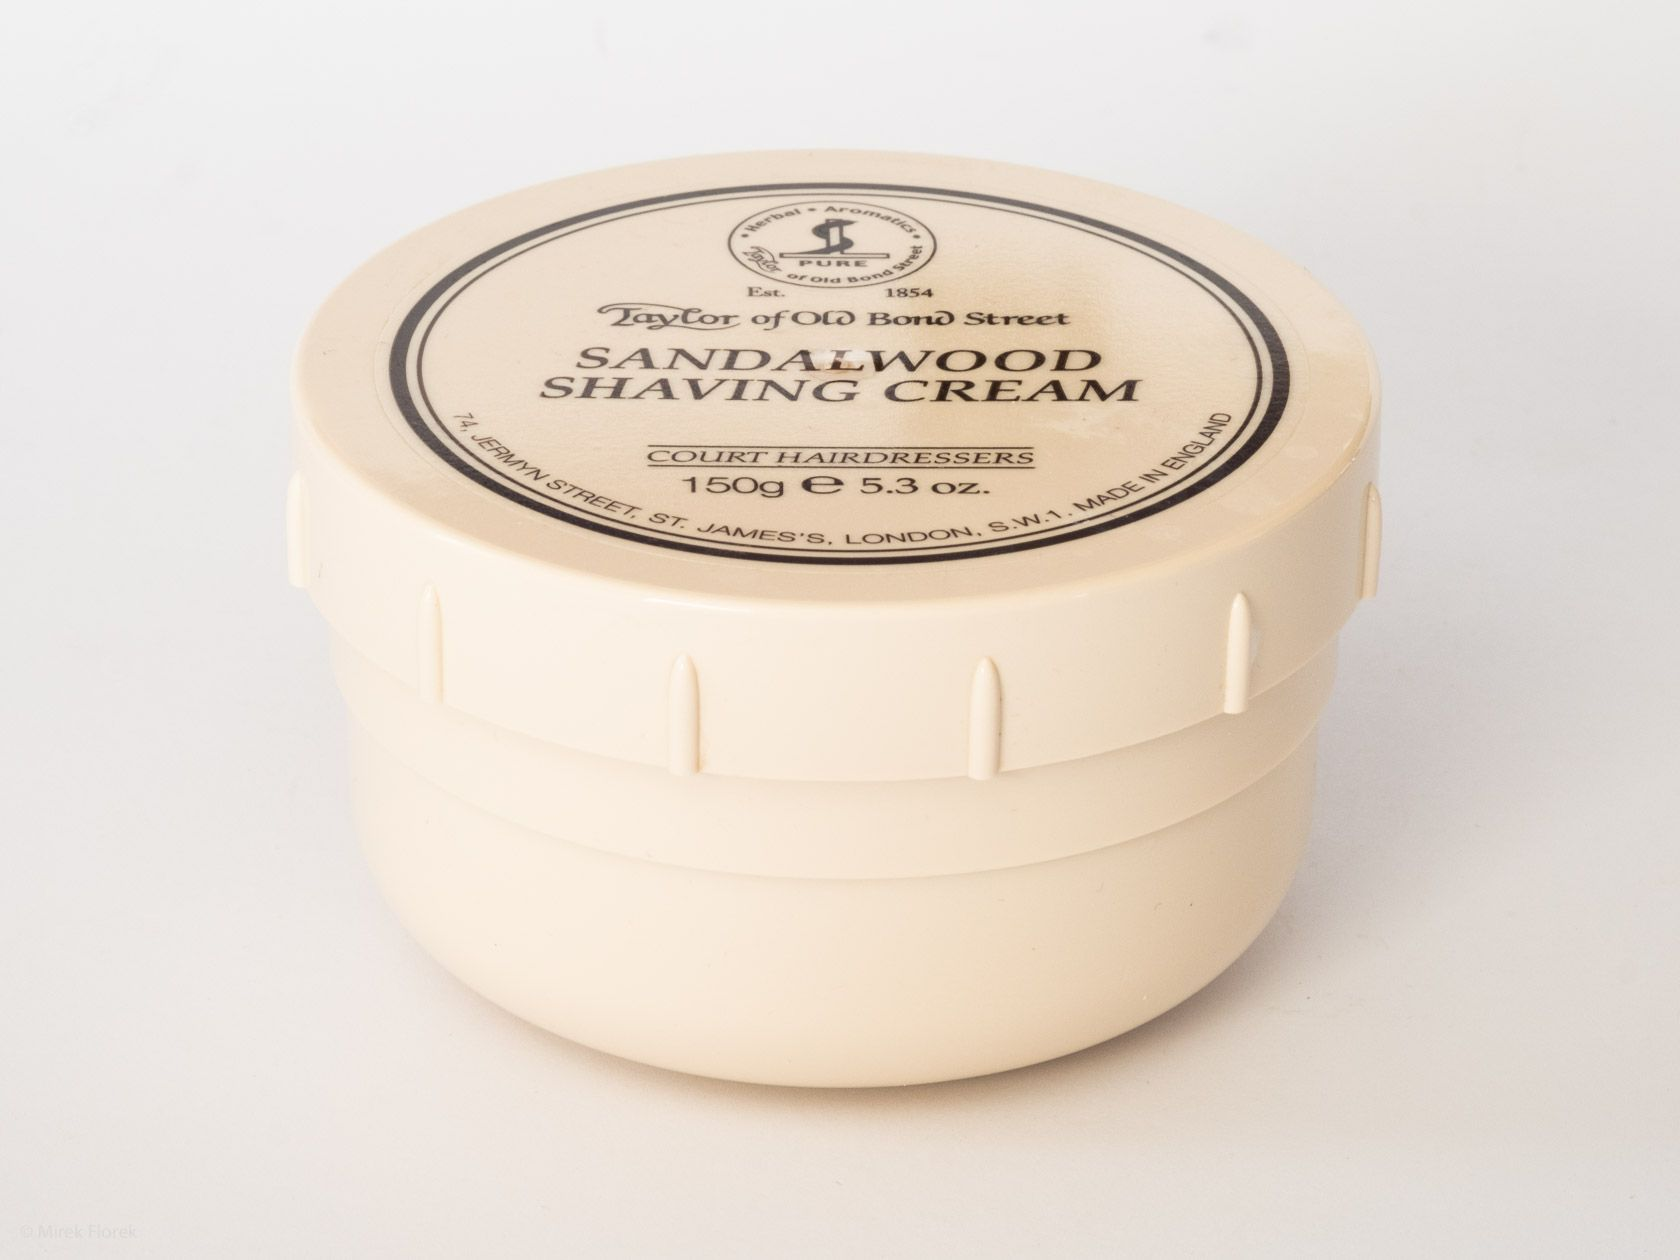 Słoik z kremem do golenia Taylor of Old Bond Street Sandalwood Shaving Cream